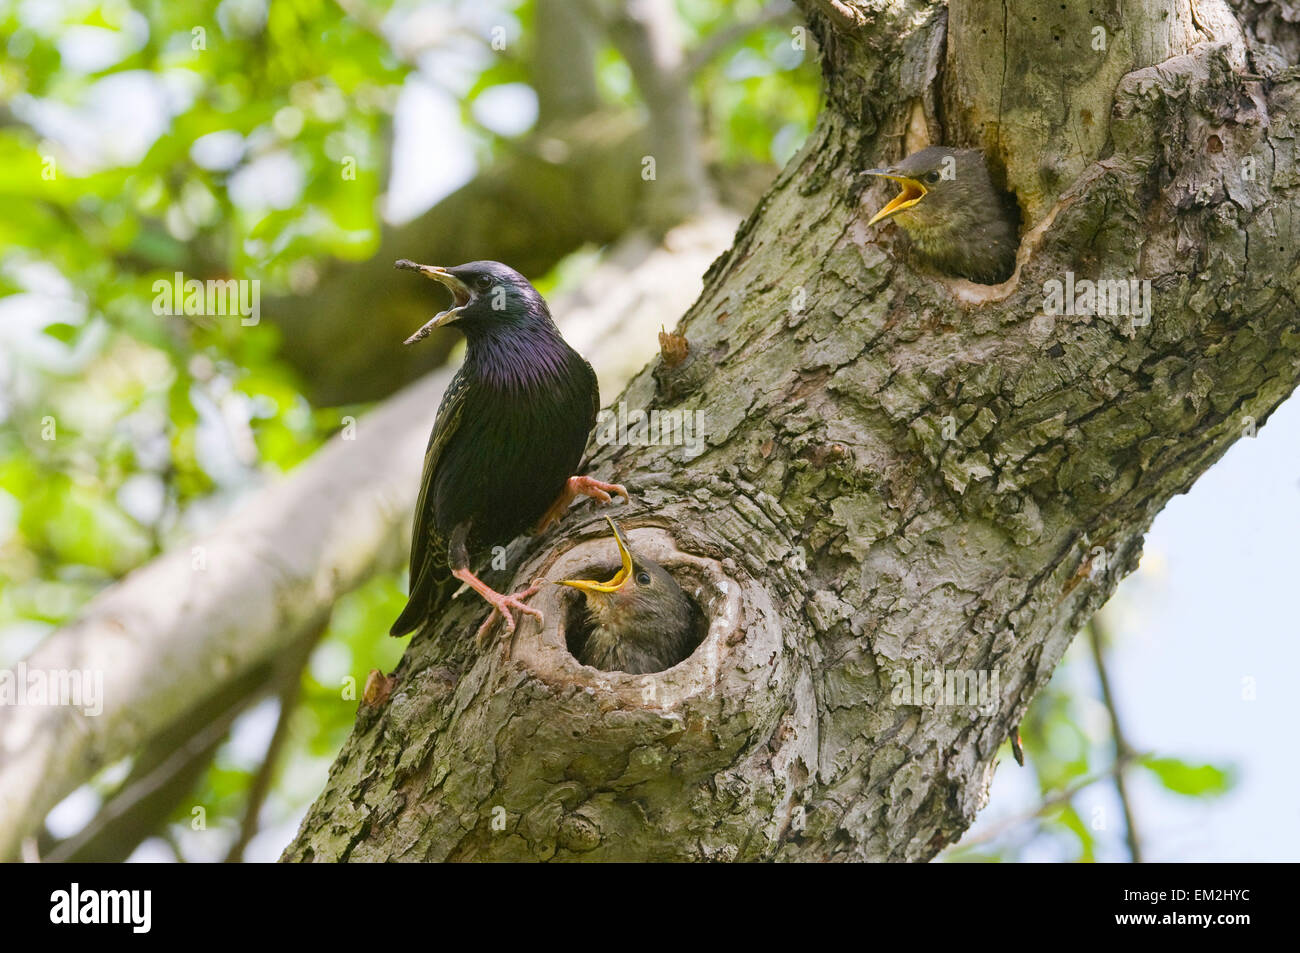 European starling (Sturnus vulgaris), adult by its nest, with offspring, Thuringia, Germany - Stock Image